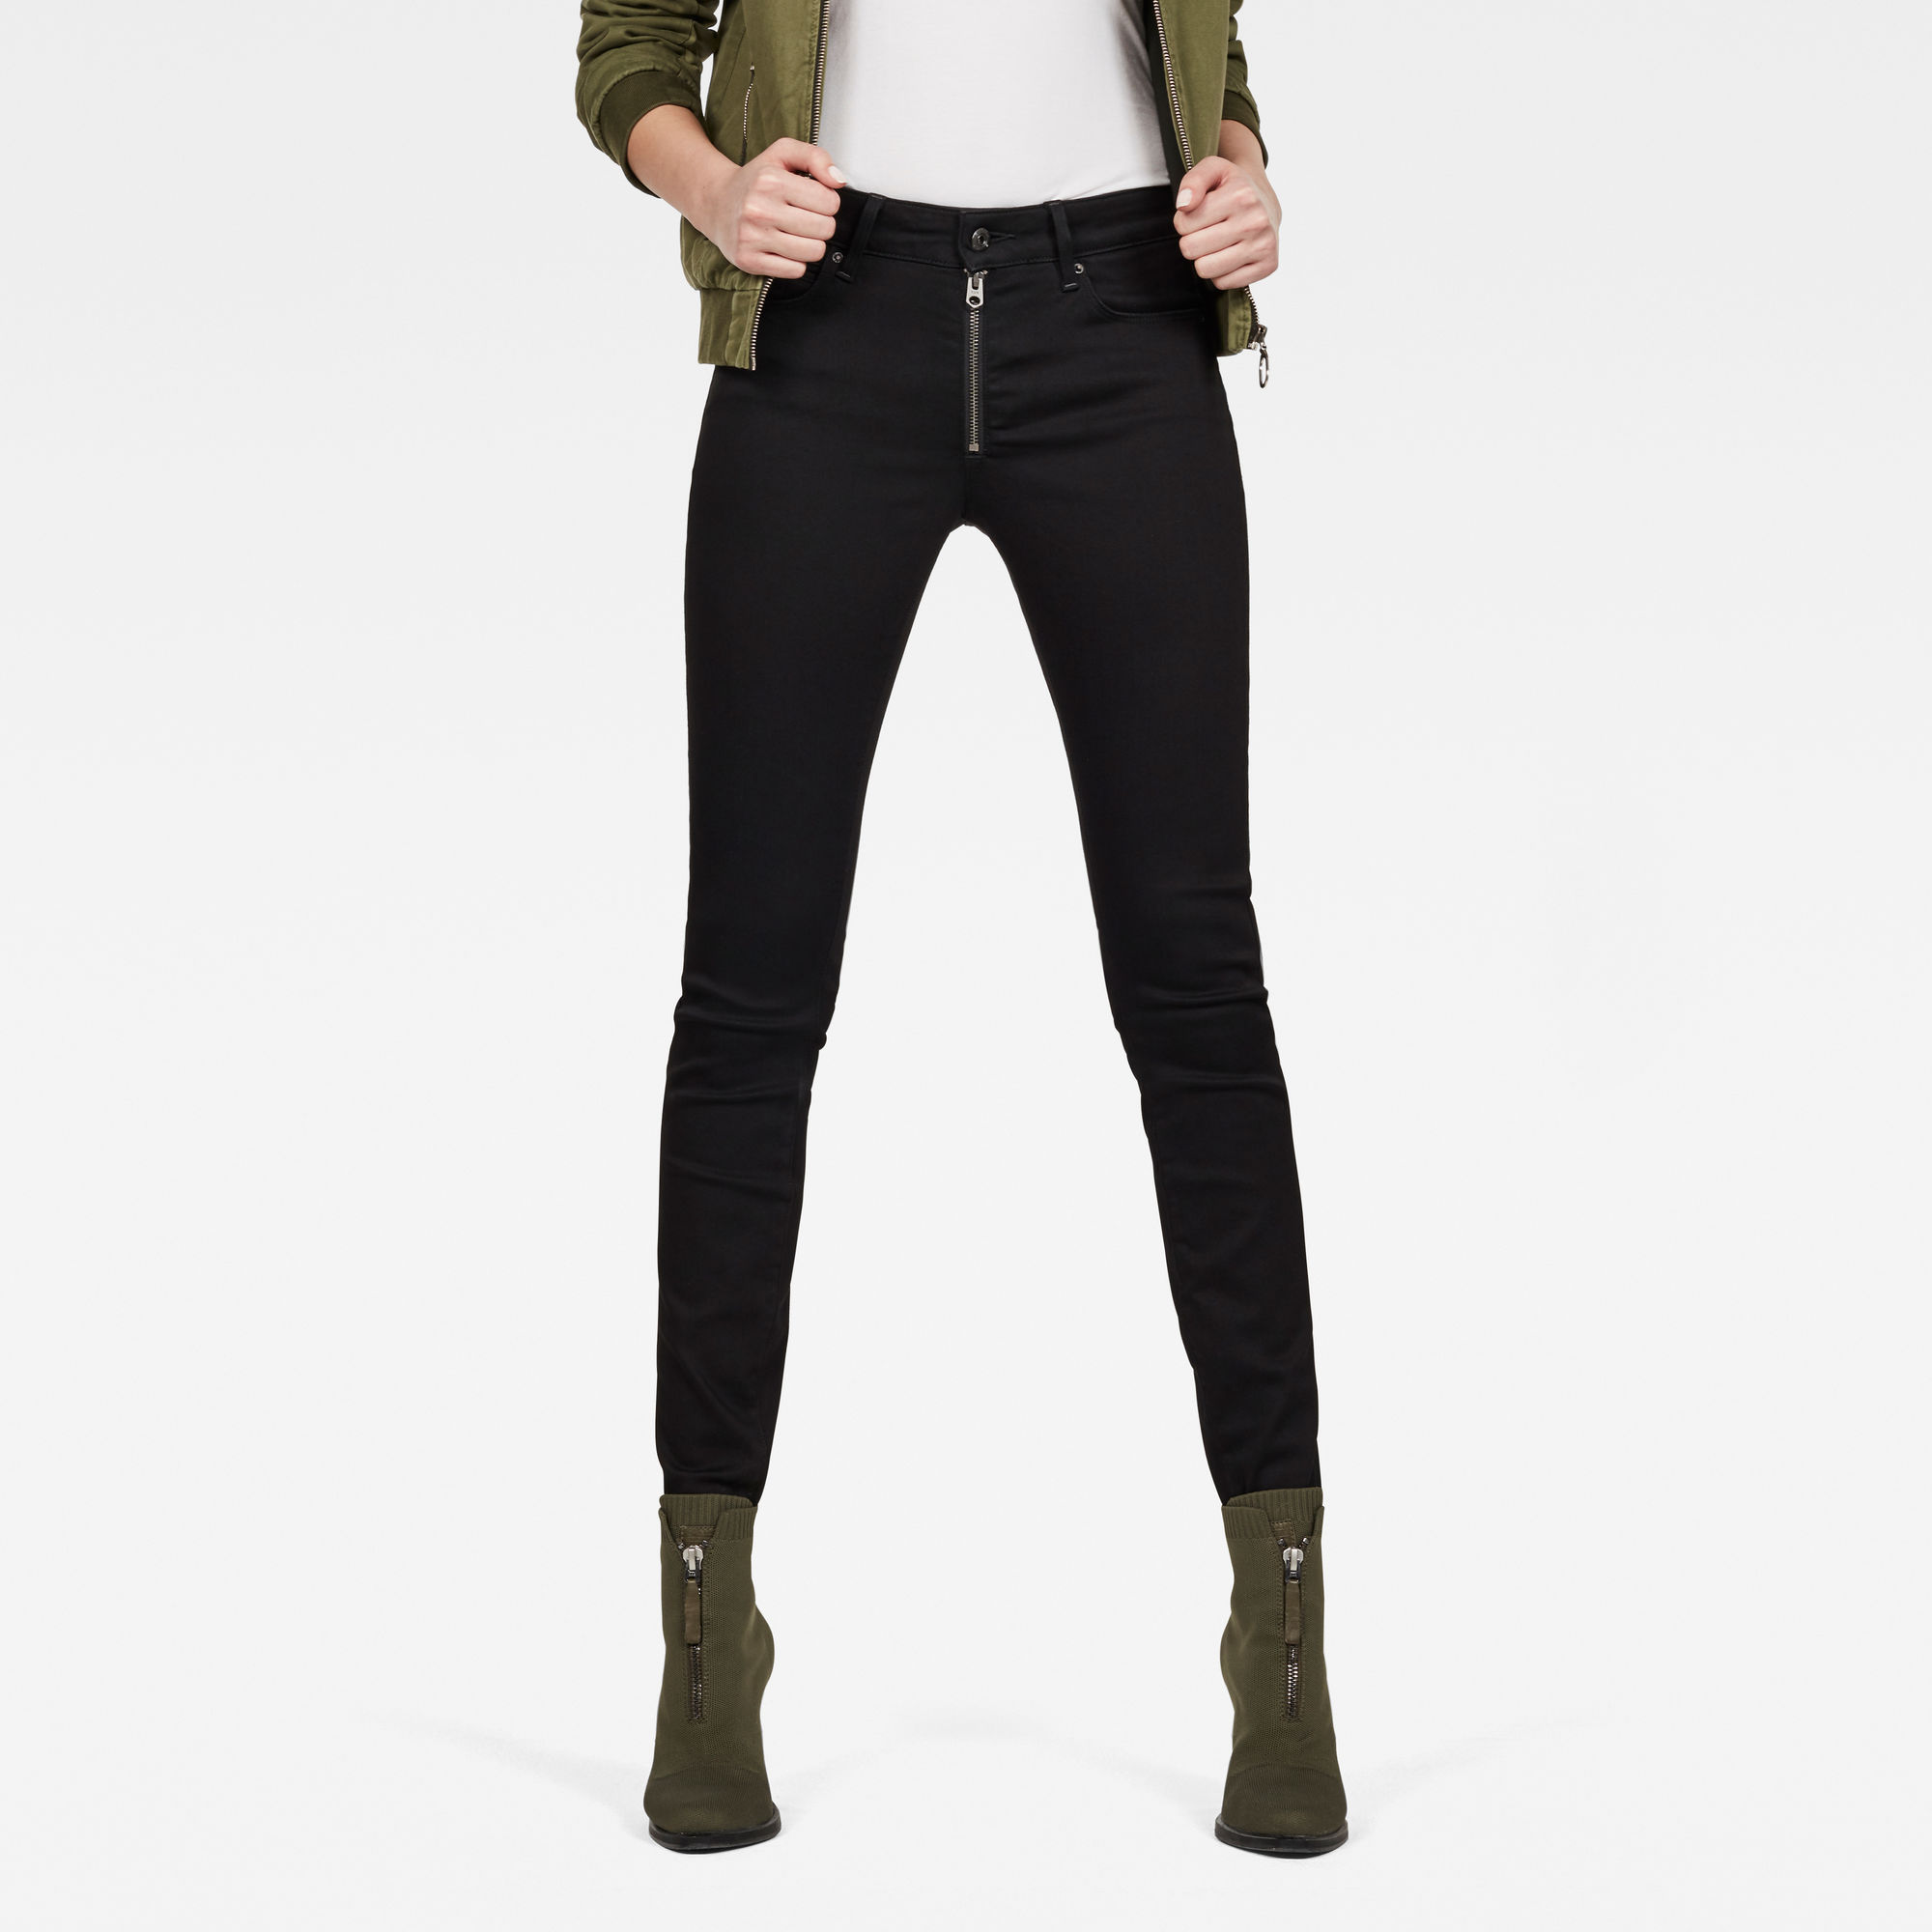 Image of G Star Raw G-Star Shape Zip High Waist Super Skinny Jeans